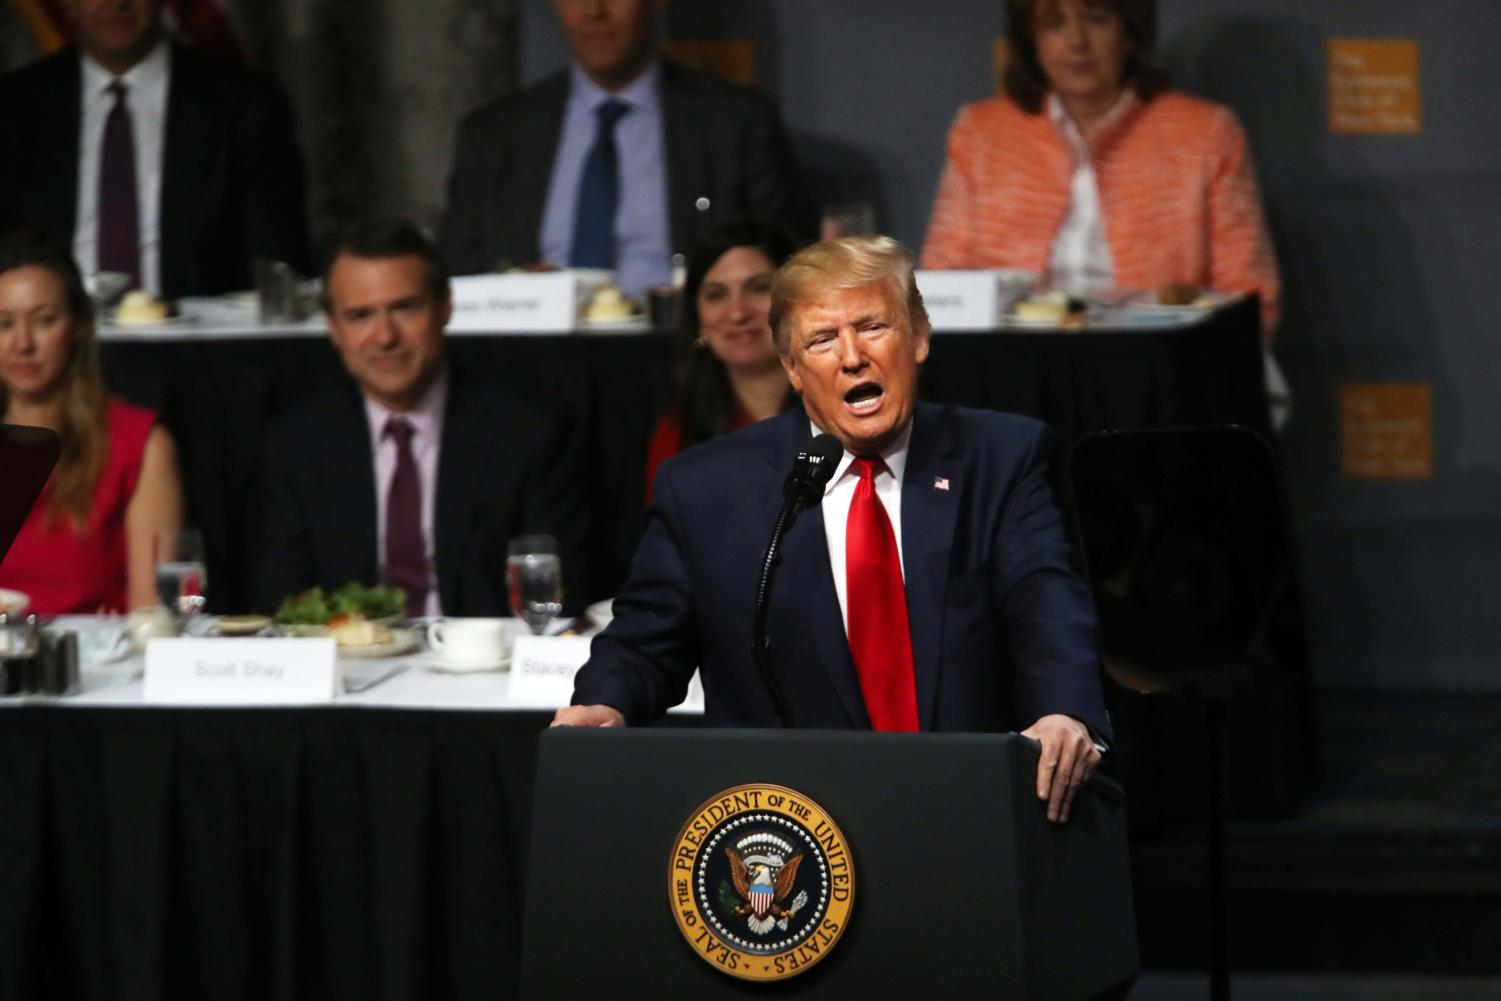 President Donald Trump speaks at the Economic Club of New York on Nov. 12 in New York City. Trump, speaking to business leaders and others in the financial community, spoke about the state of the U.S. economy and the prolonged trade talks with China.